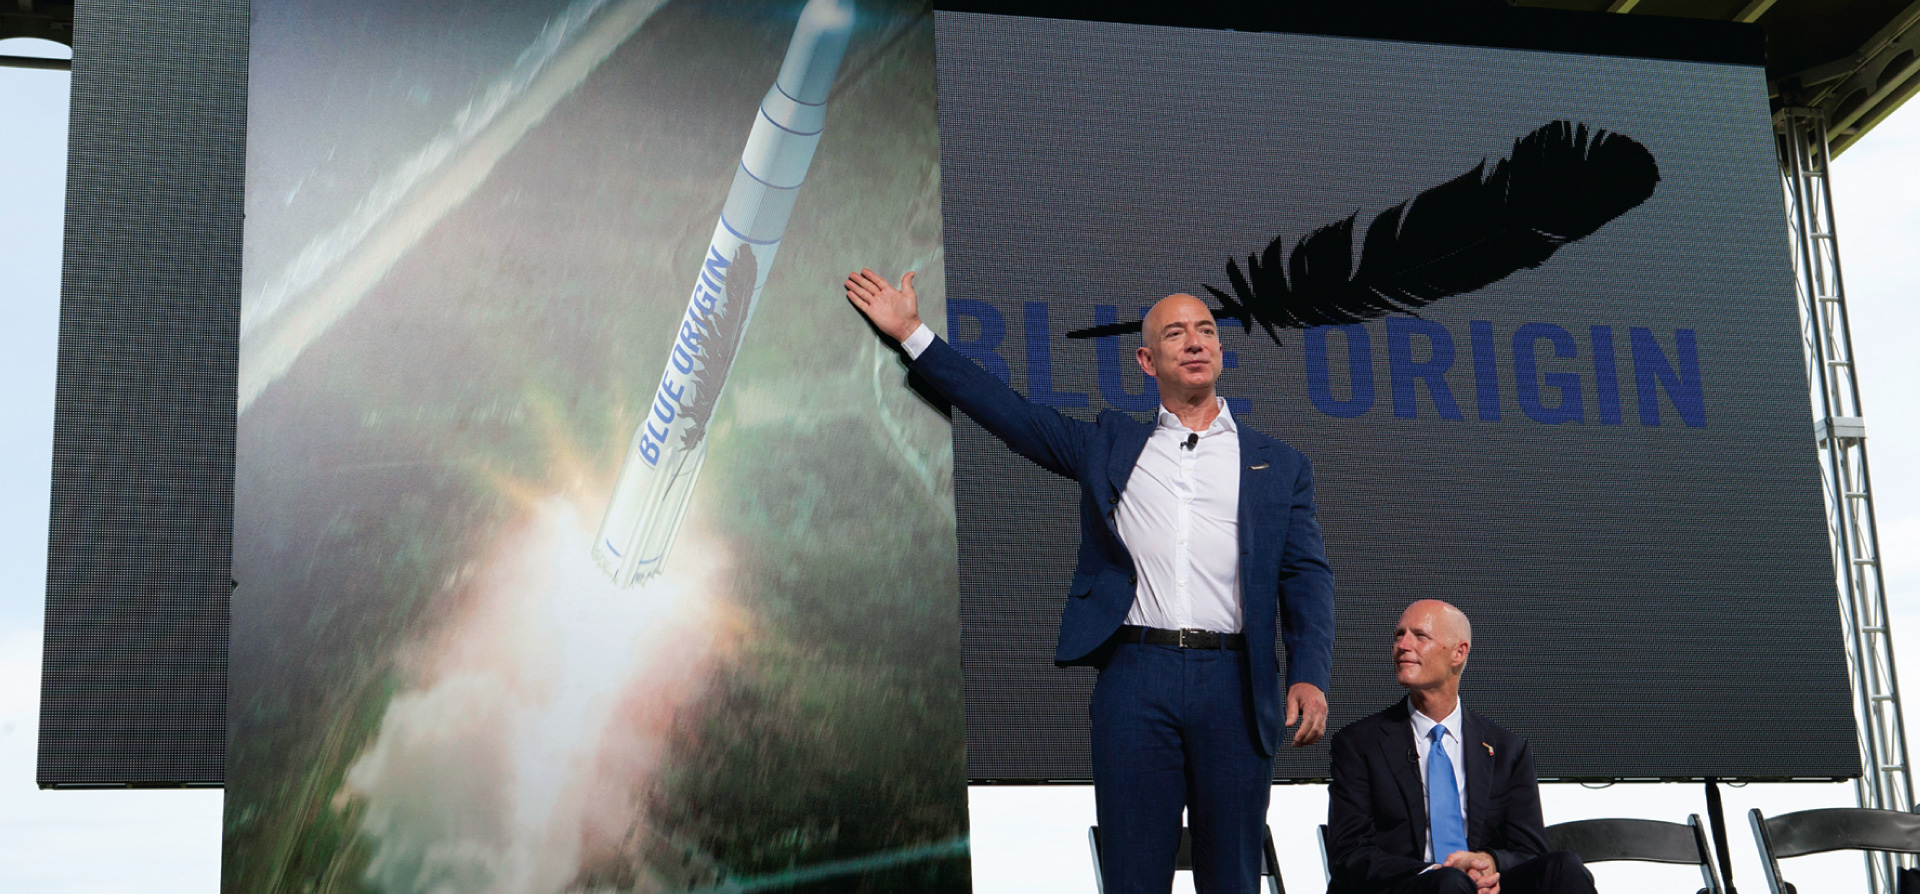 Blue Origin Event Image